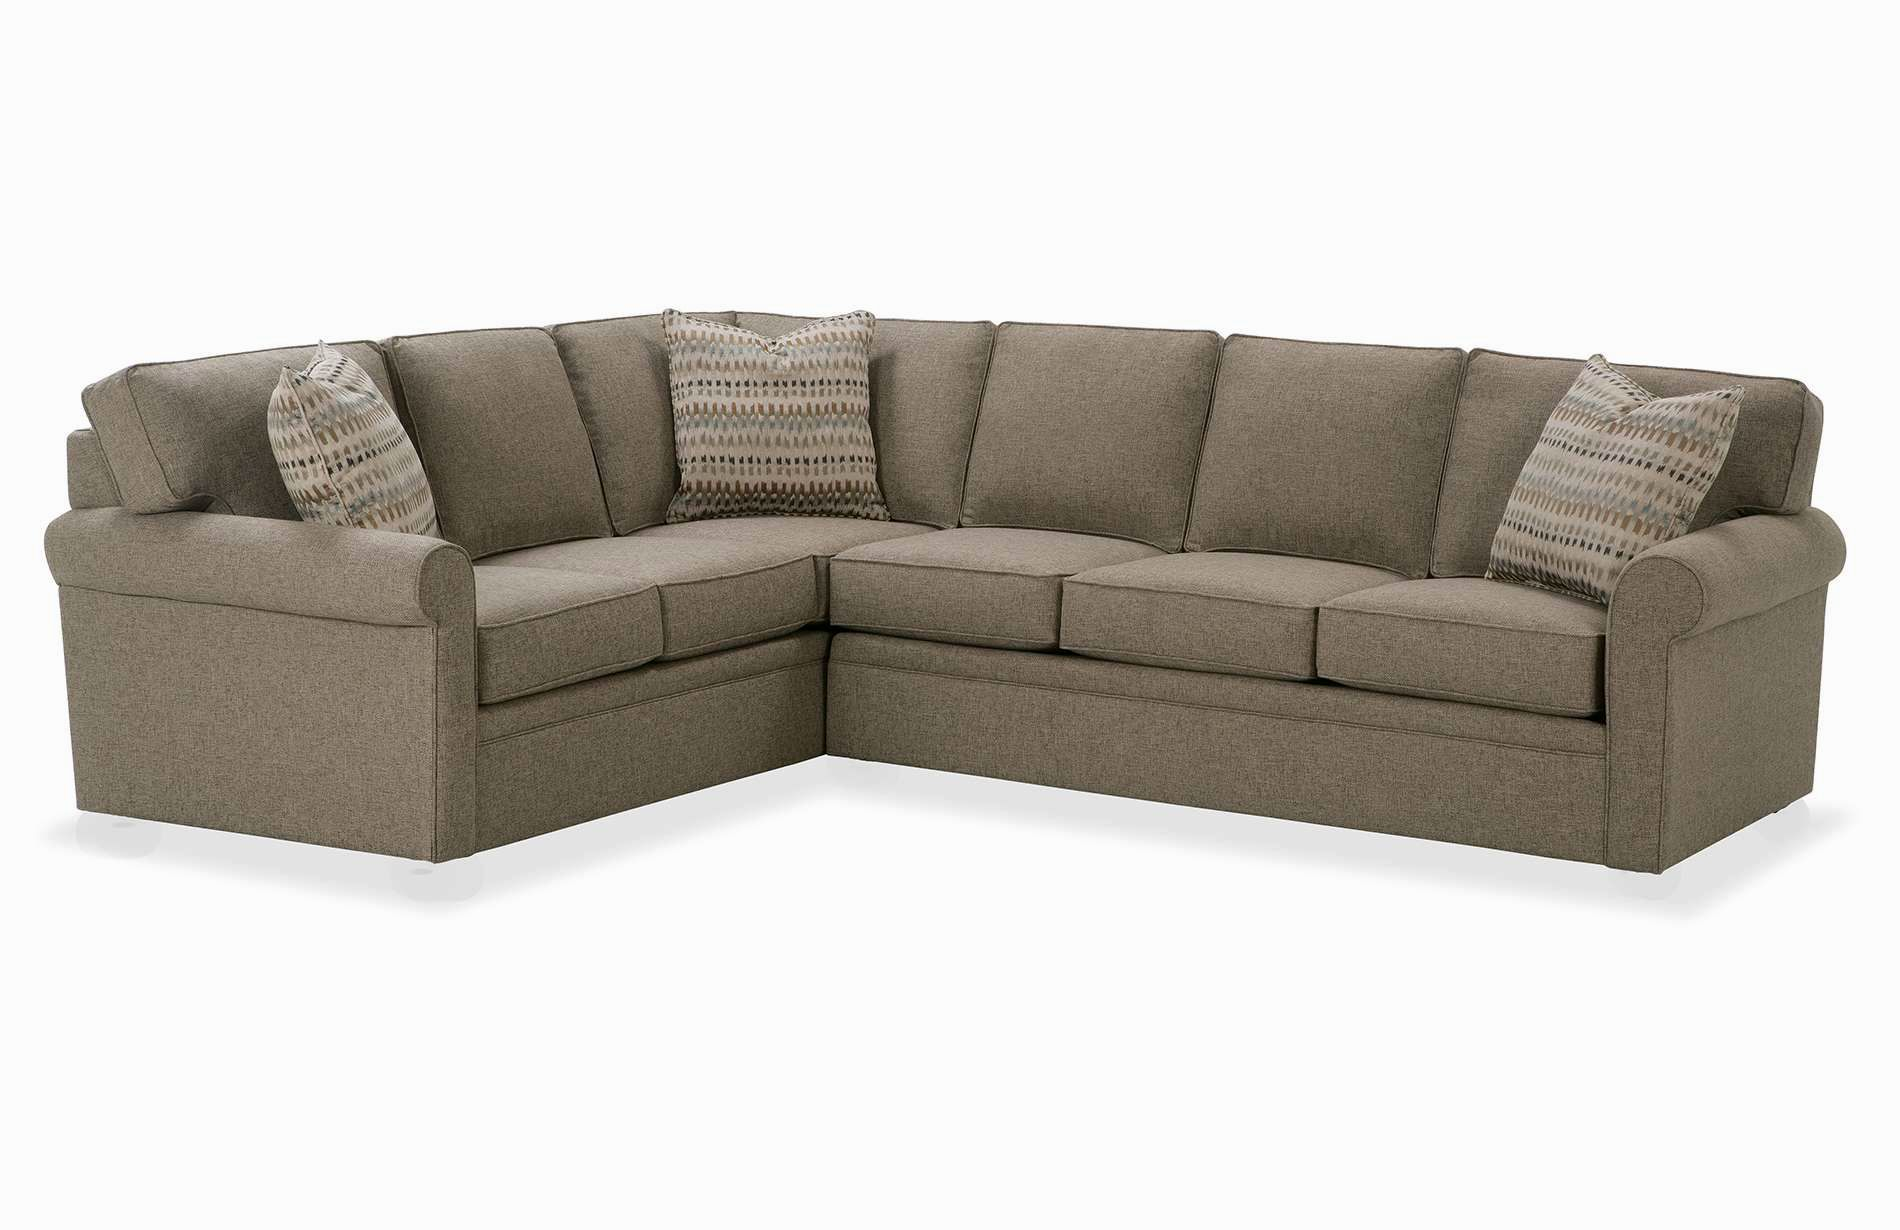 lovely unique sectional sofas online-Best Unique Sectional sofas Photo